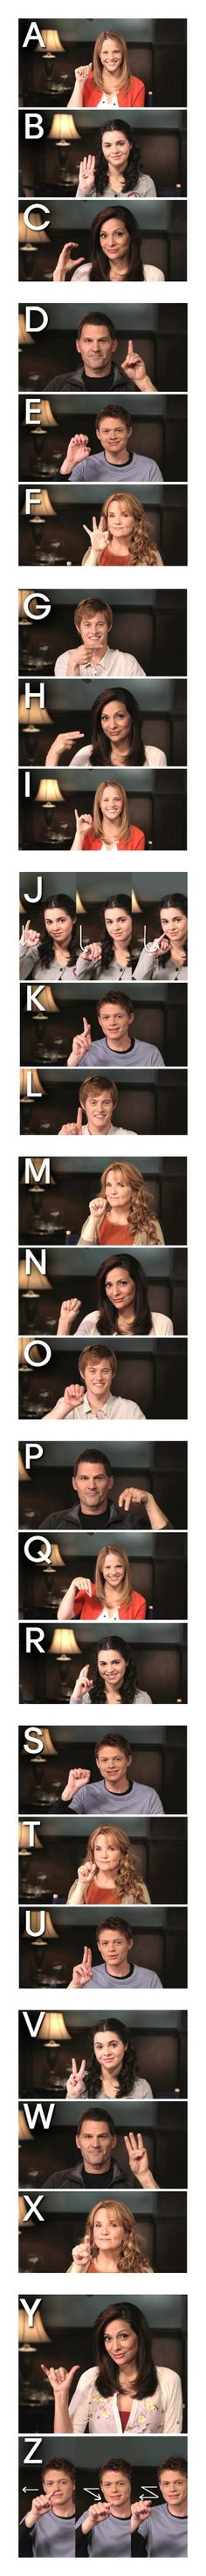 American Sign Language alphabet from the Switched at Birth cast - Ann Lowell-Marden - Sign Language Alphabet, Learn Sign Language, American Sign Language, Body Language, Learn To Sign, Asl Signs, Switched At Birth, Deaf Culture, Shows